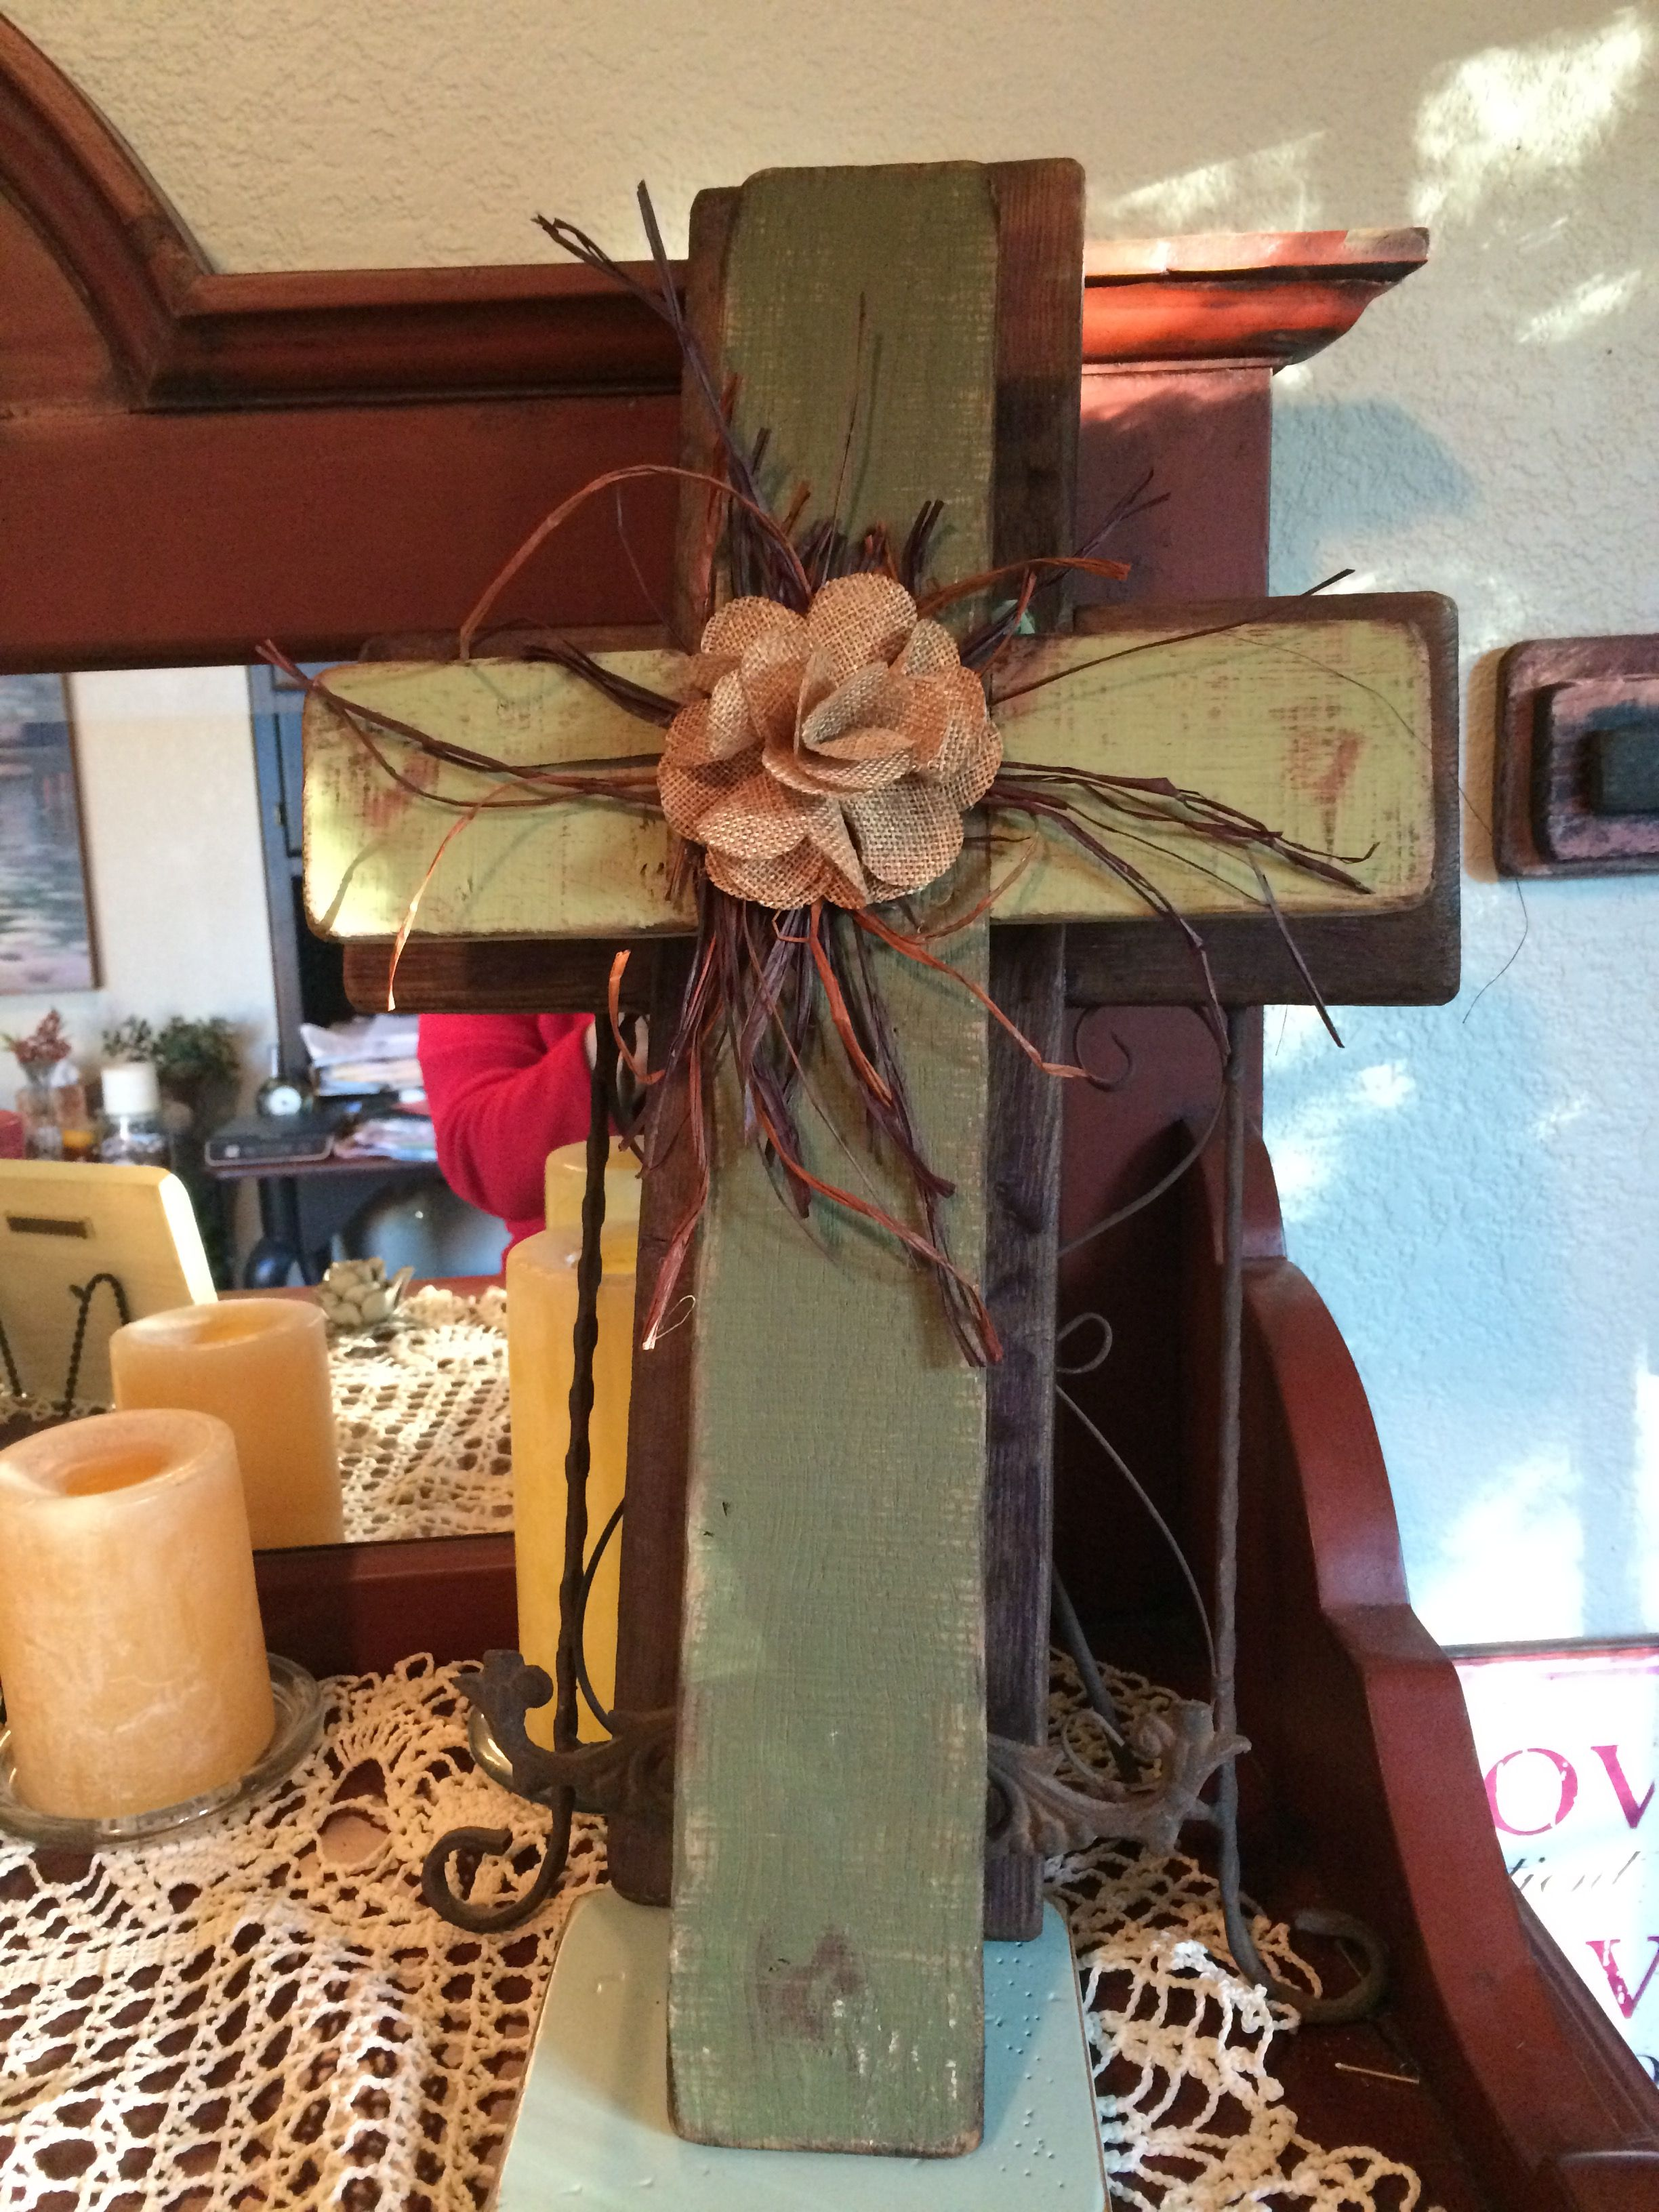 Reclaimed wood cross from a local winery. The wood is flat and aged the wine vat. This cross is beautifully crafted and lovingly sanded to bring out touches of the natural patina.